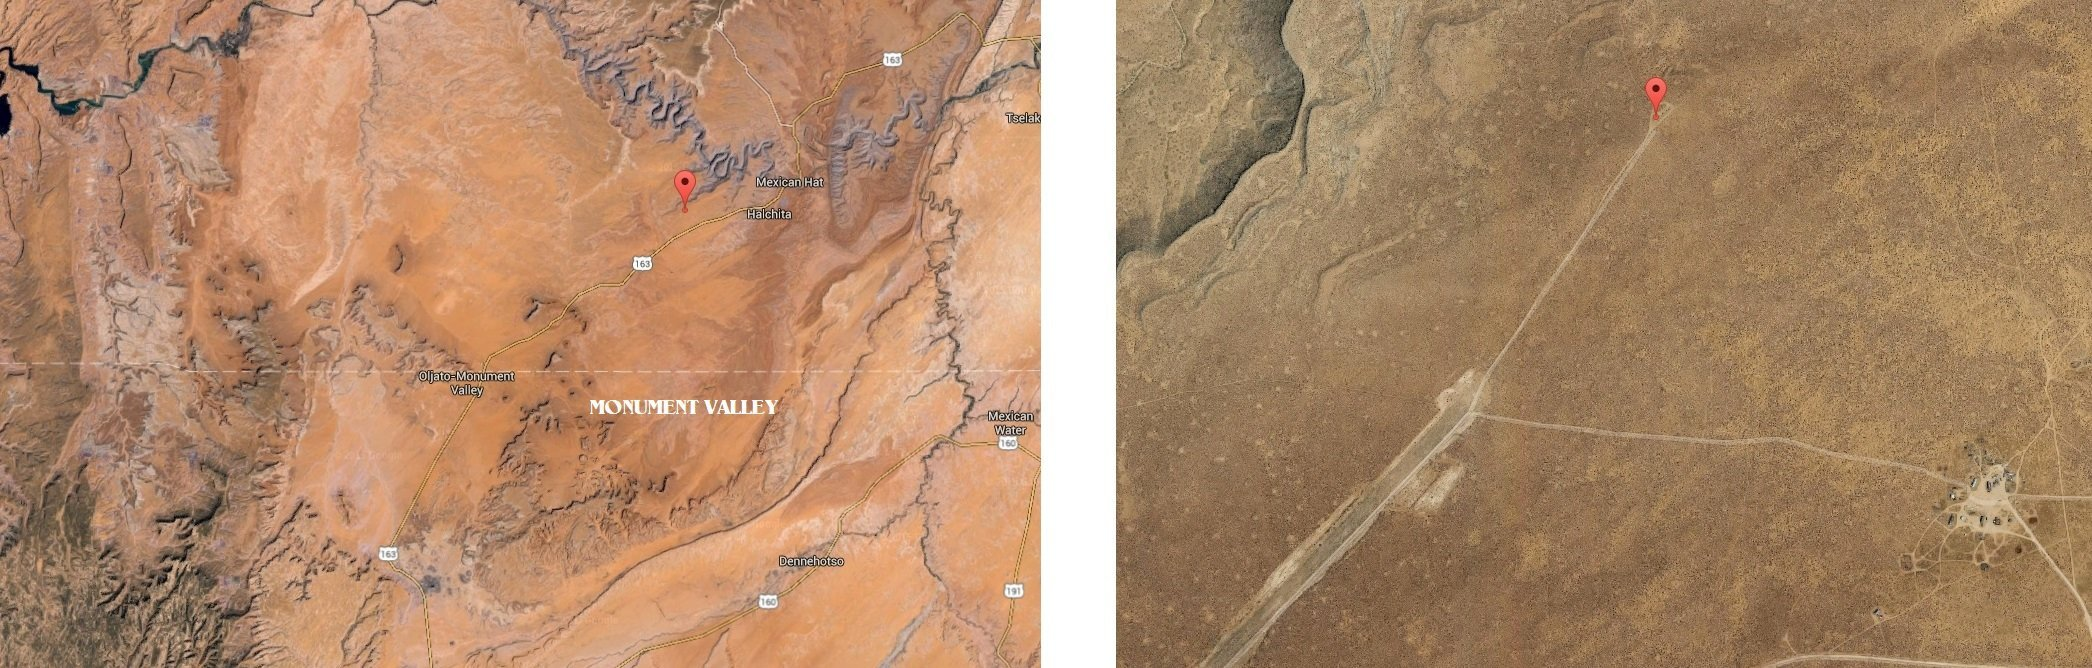 The position of the location, along highway 163 between Monument Valley and Mexican Hat